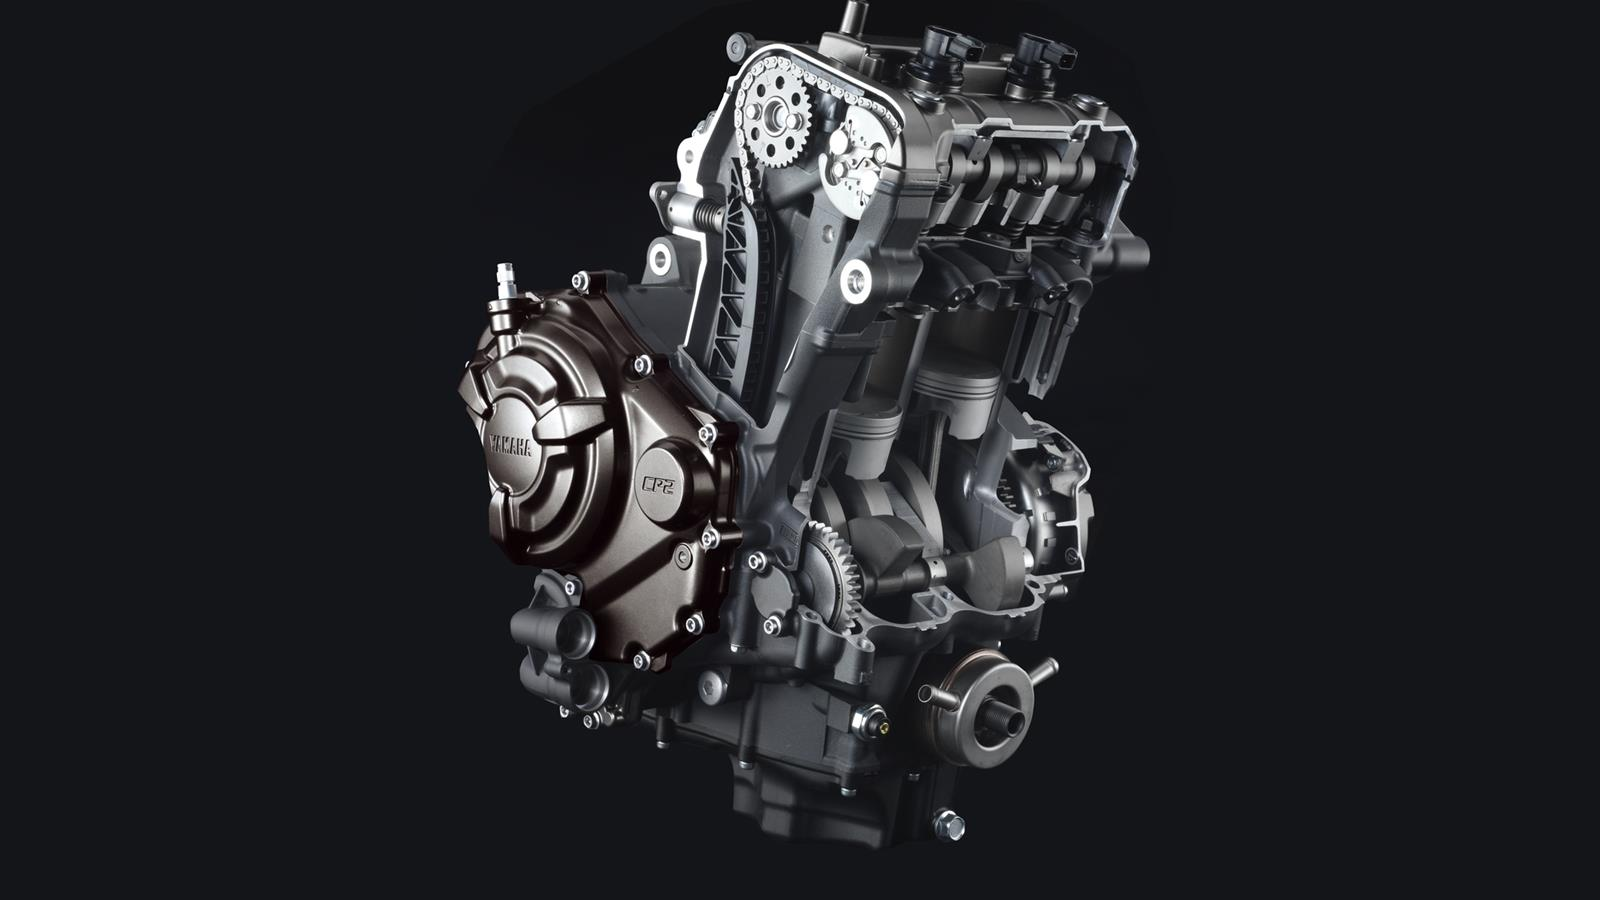 Yamaha Introduces Mt 07 Lightweight Affordable 689cc Twin Engine Wiring Yammid1 5